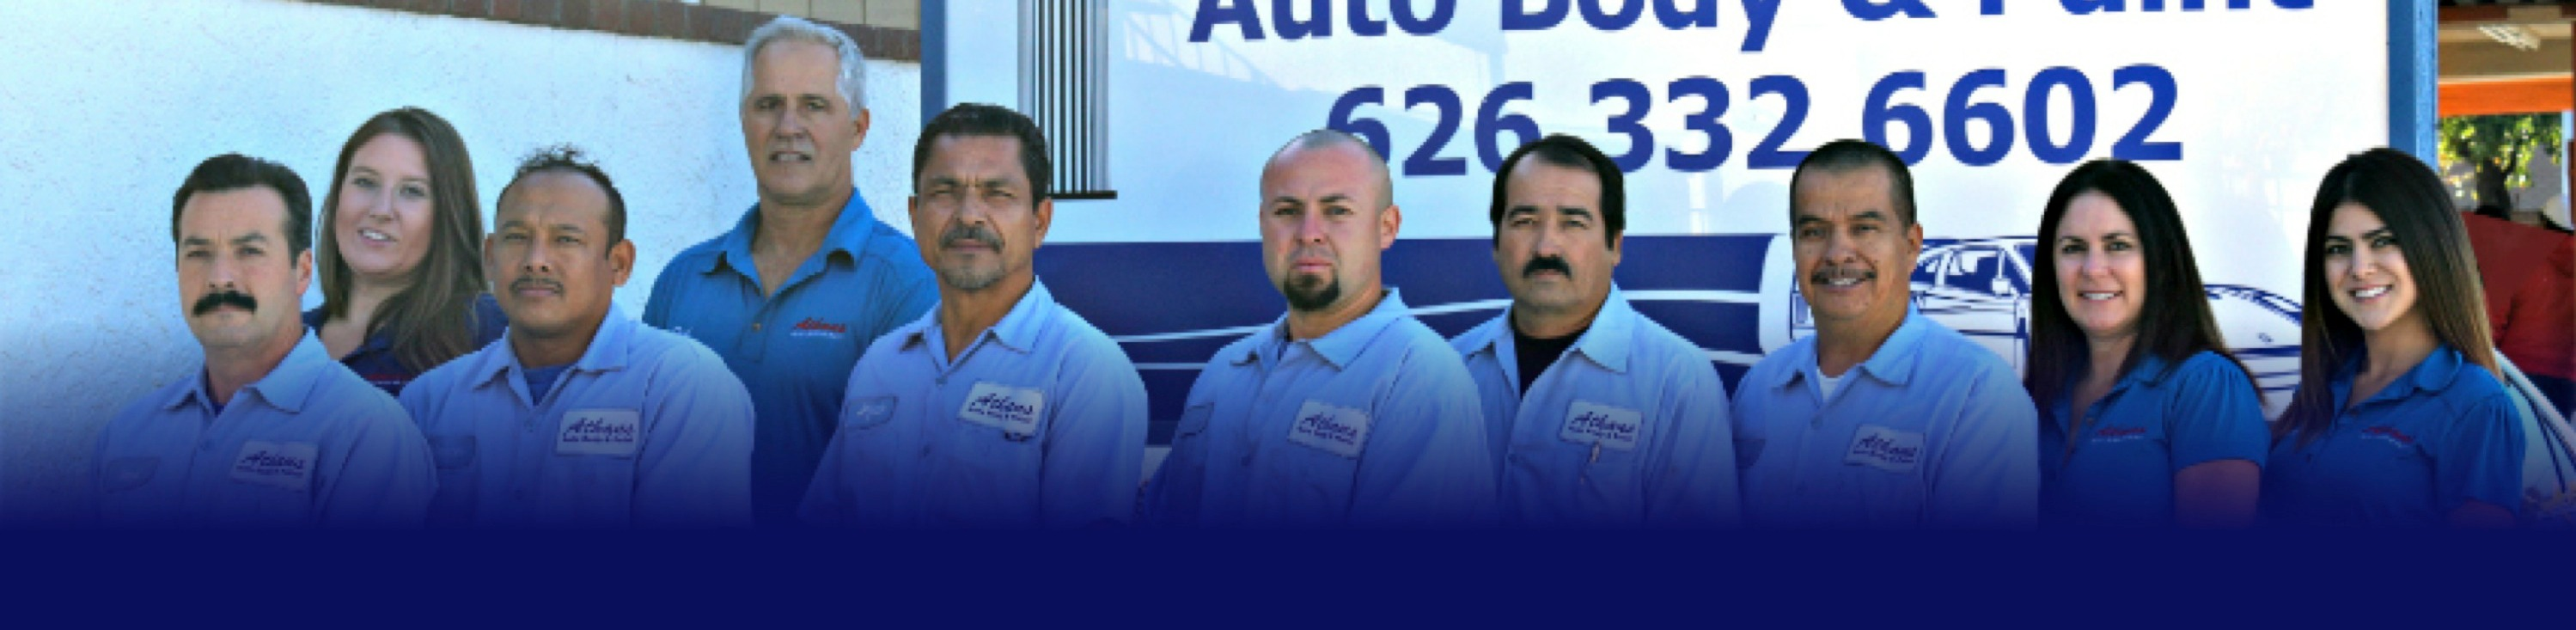 athans auto body company photo banner